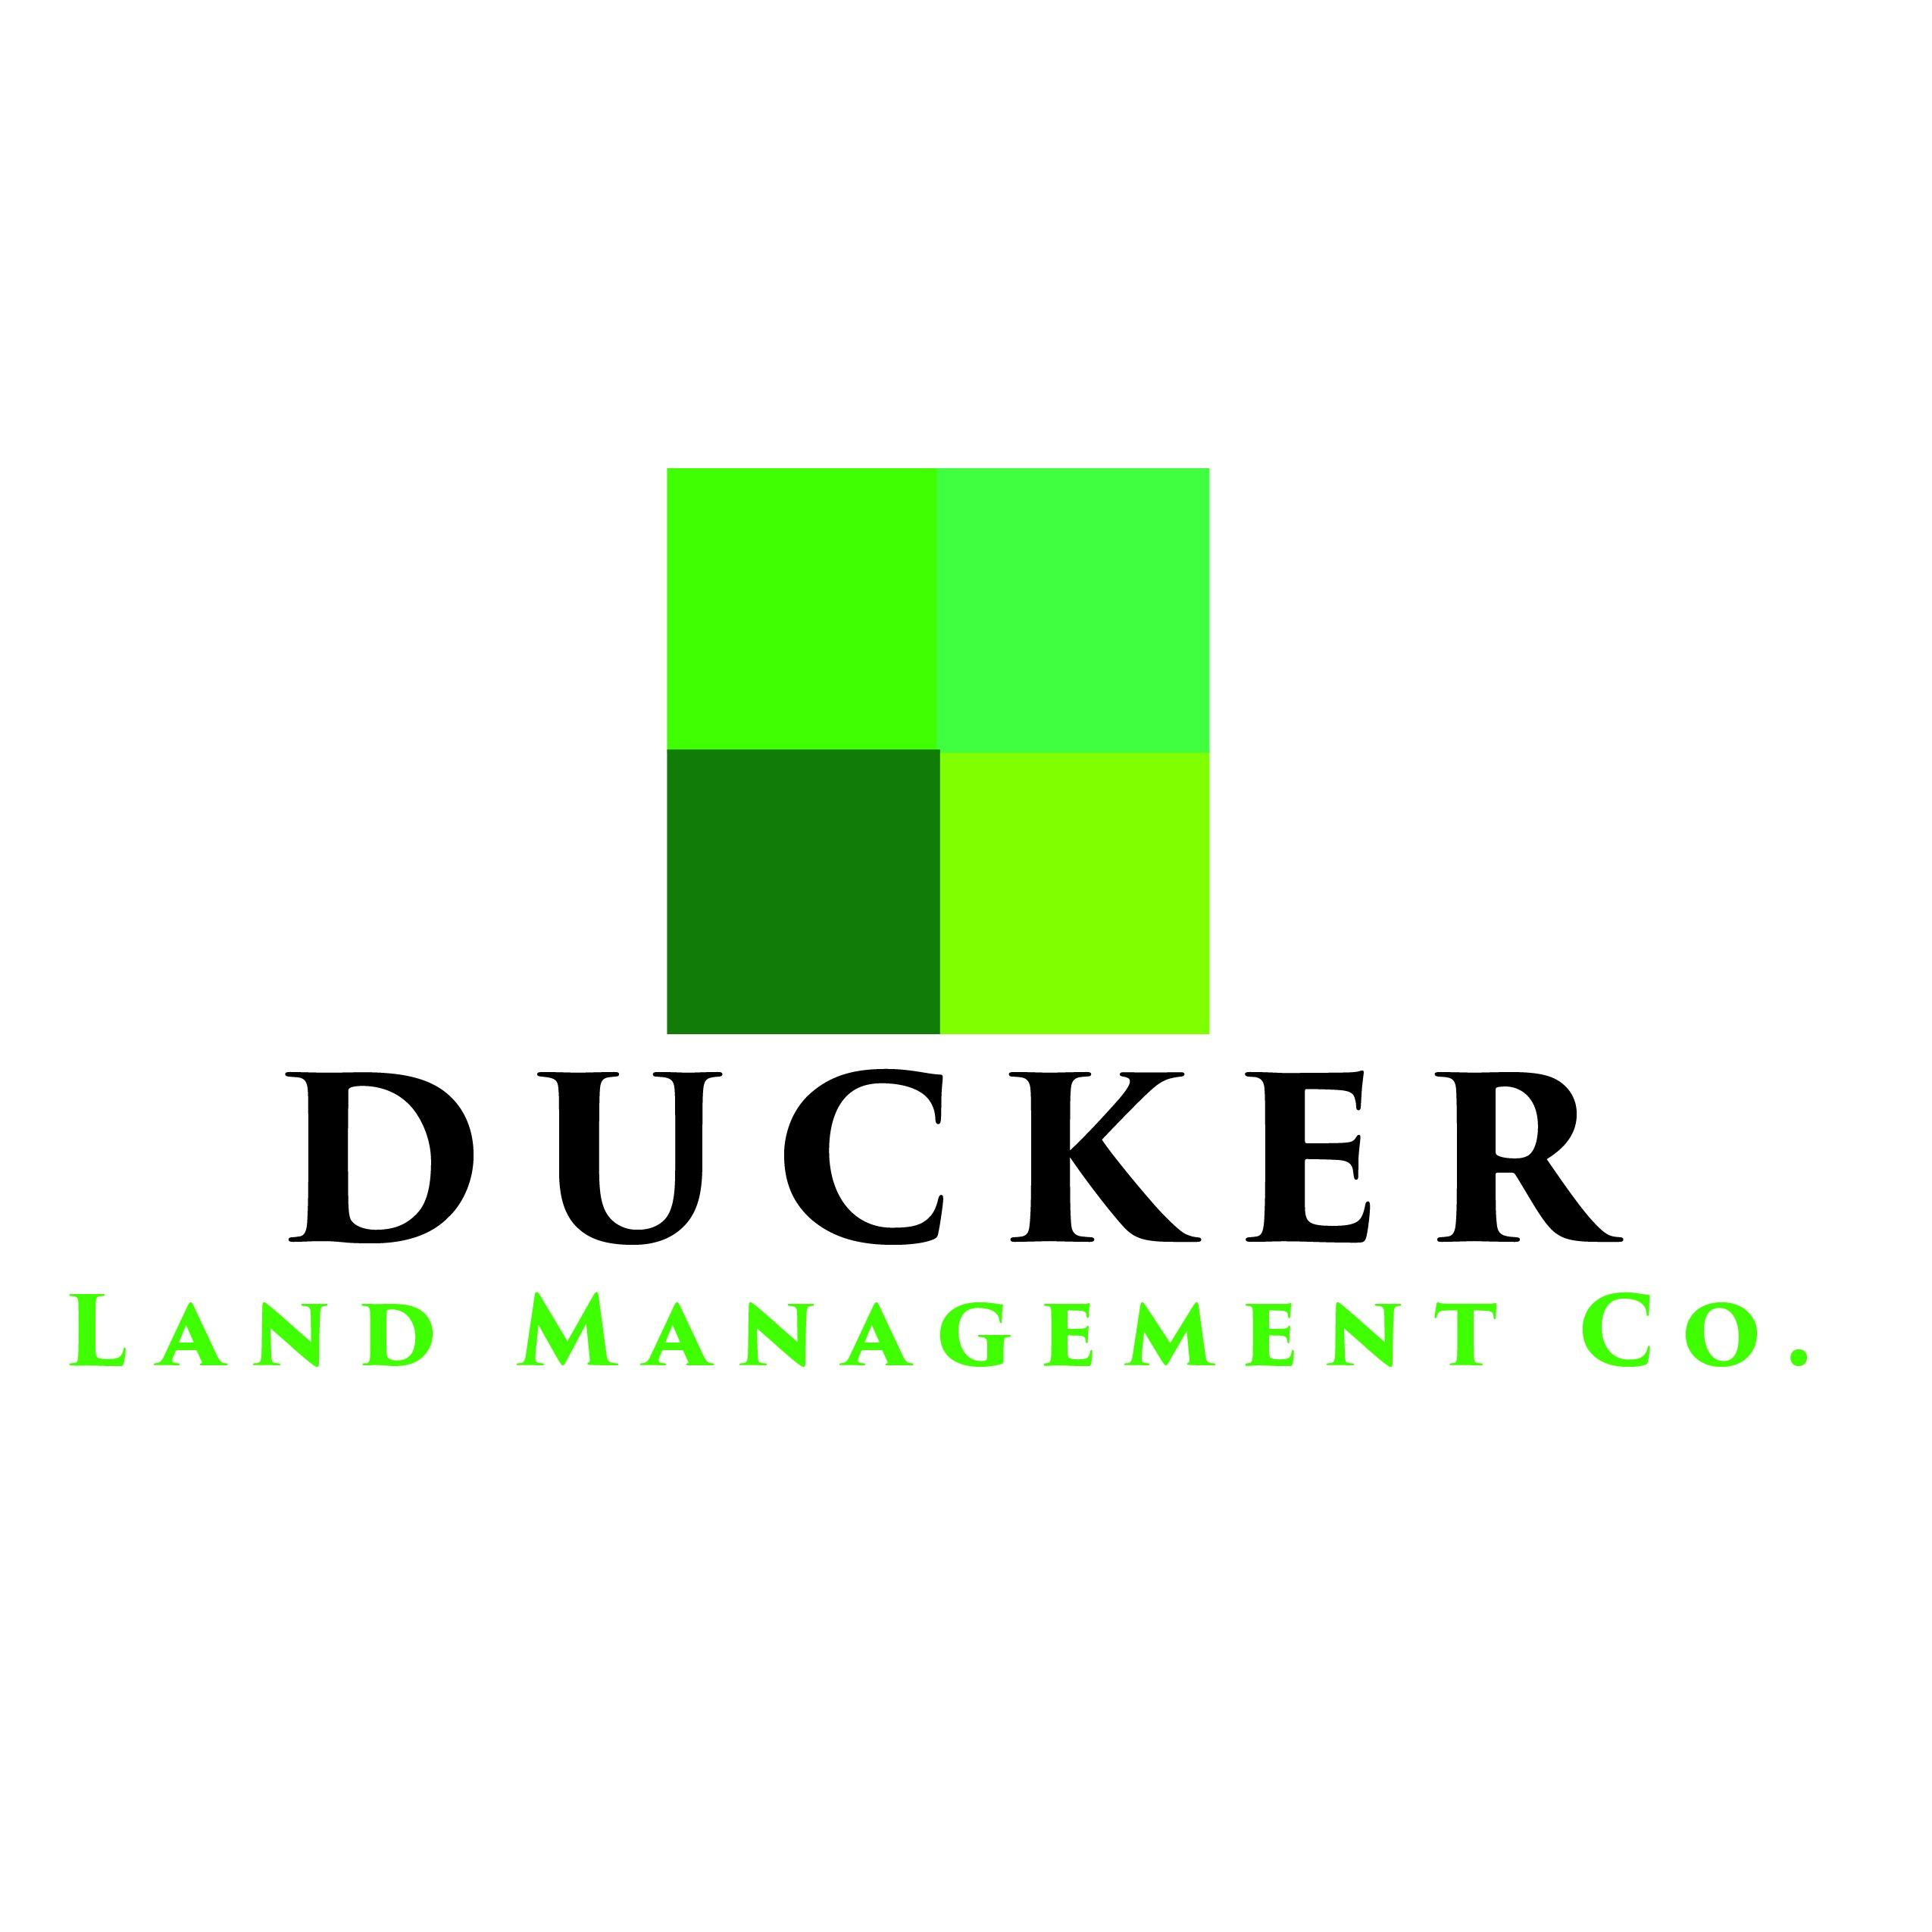 Ducker Land Management Company